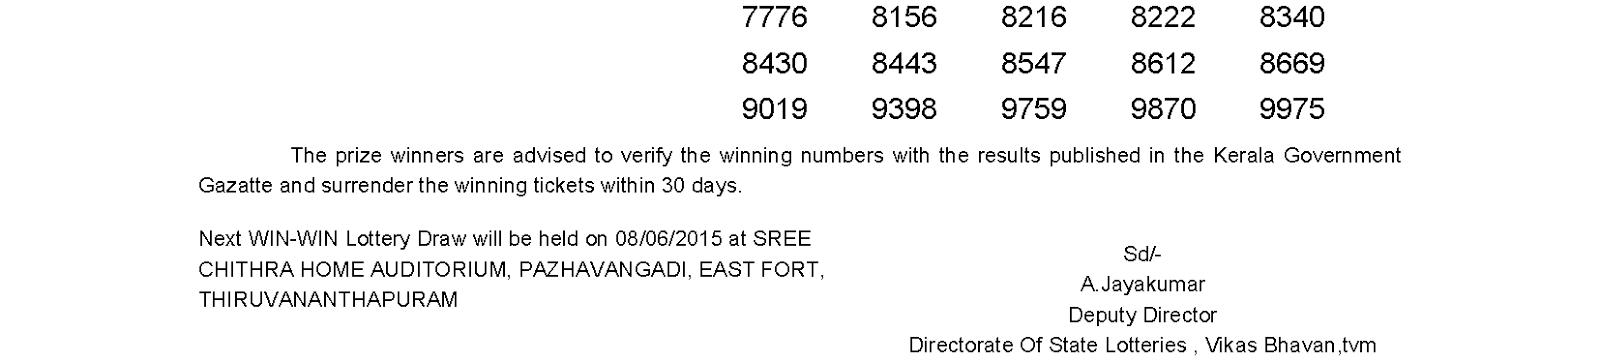 WIN WIN Lottery W 310 Result 1-6-2015